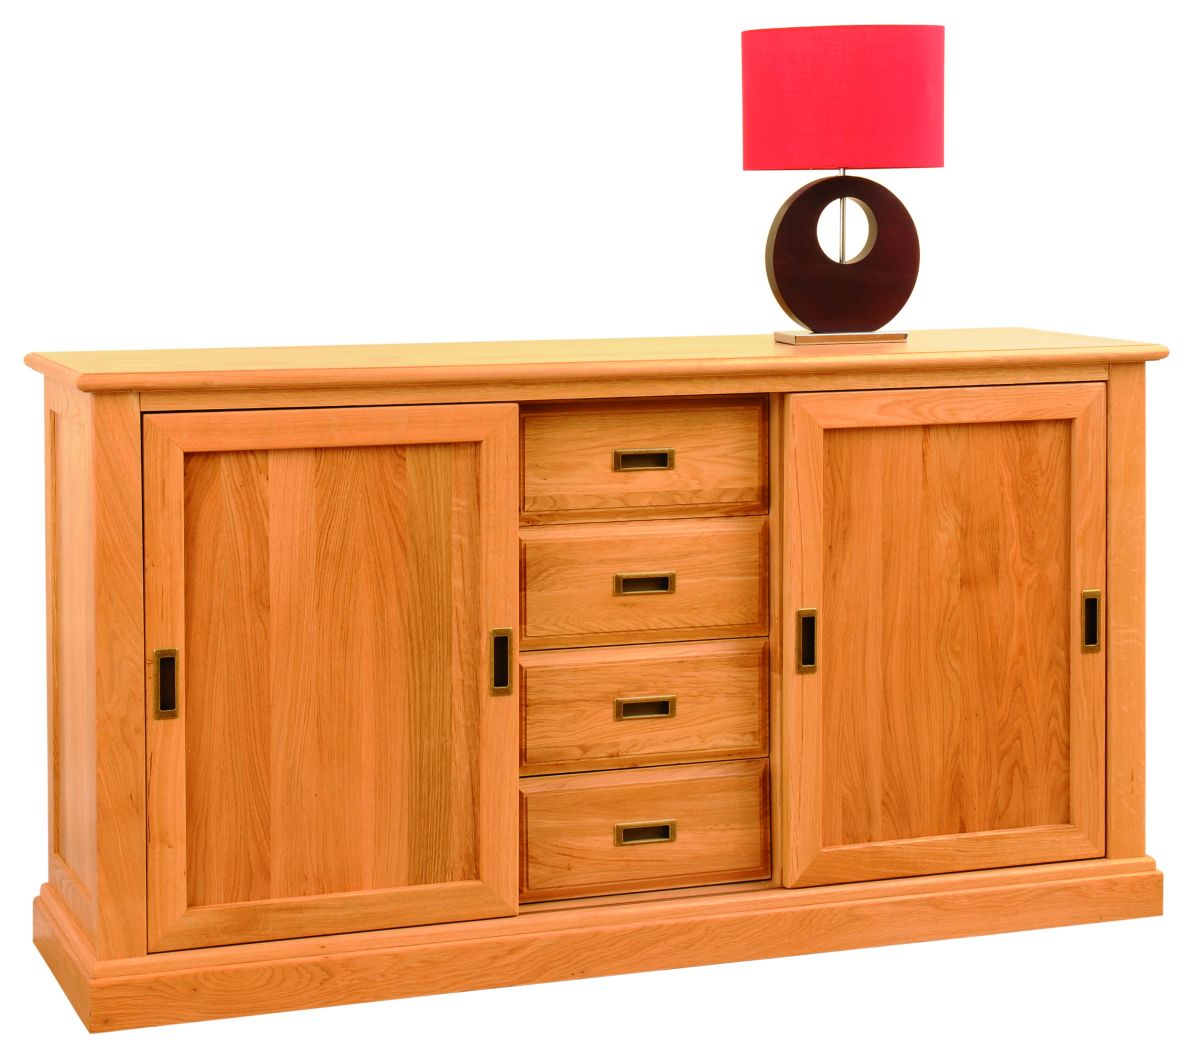 Solid Oak Sideboard, 2 Doors and 4 Drawers